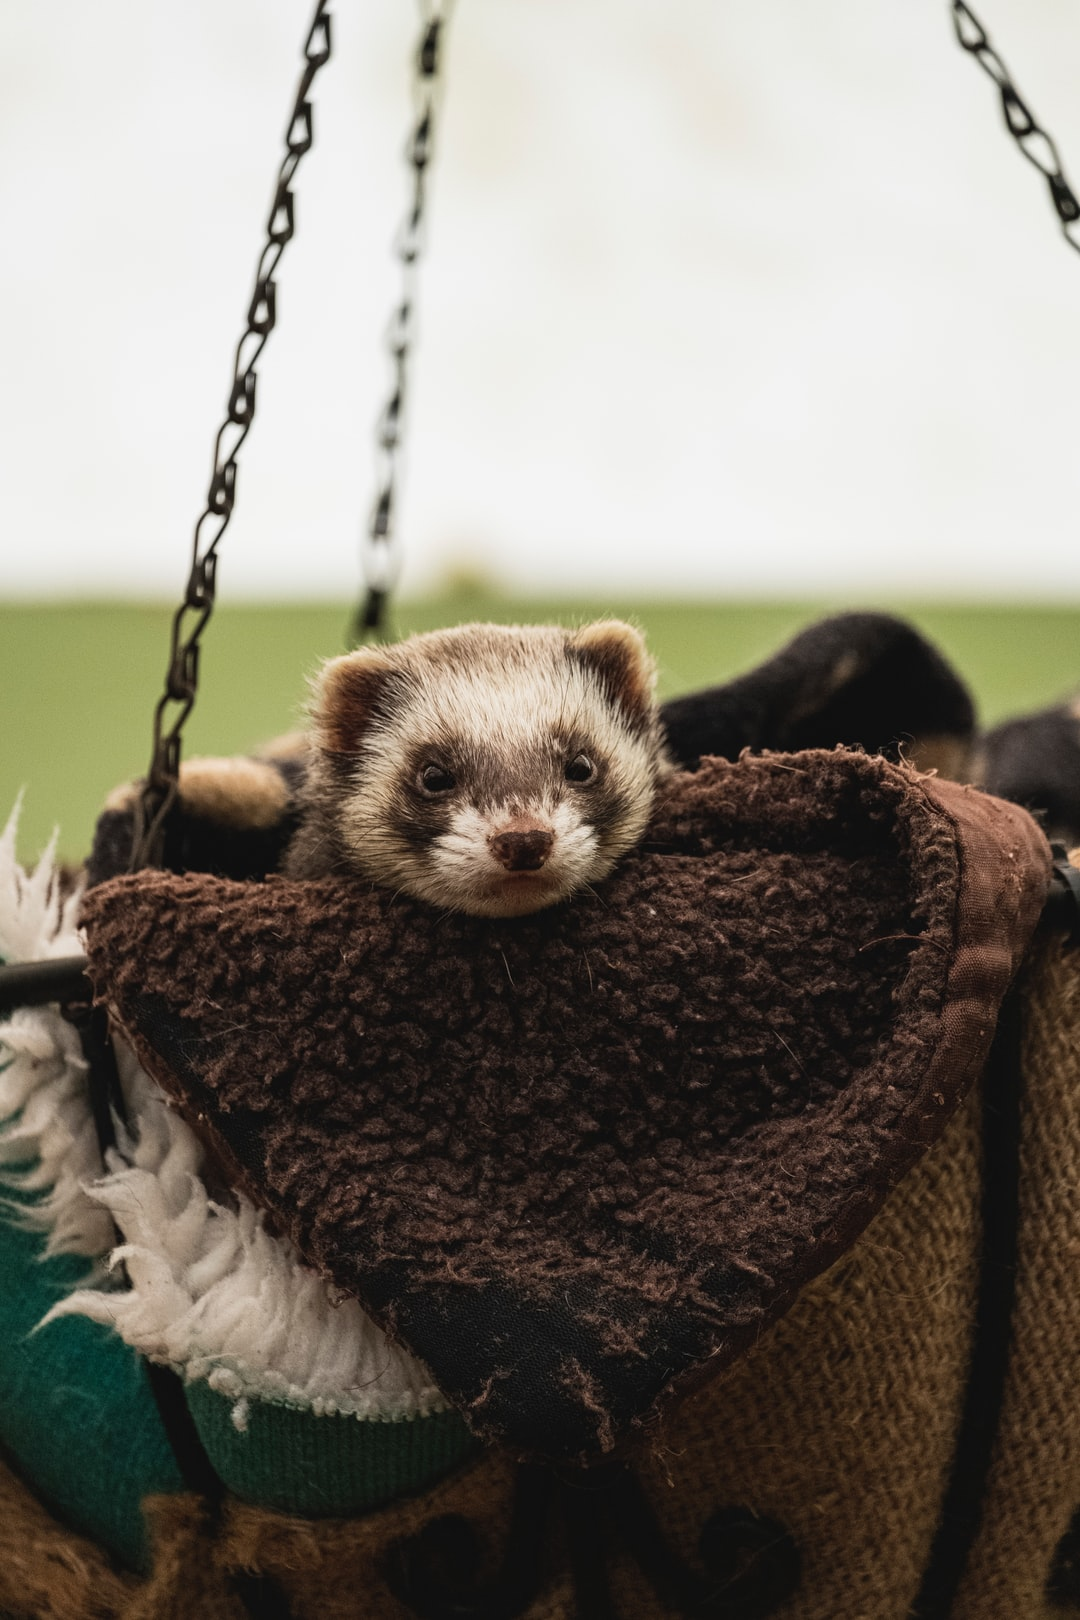 [ANSWERED] Why are ferrets illegal in California?